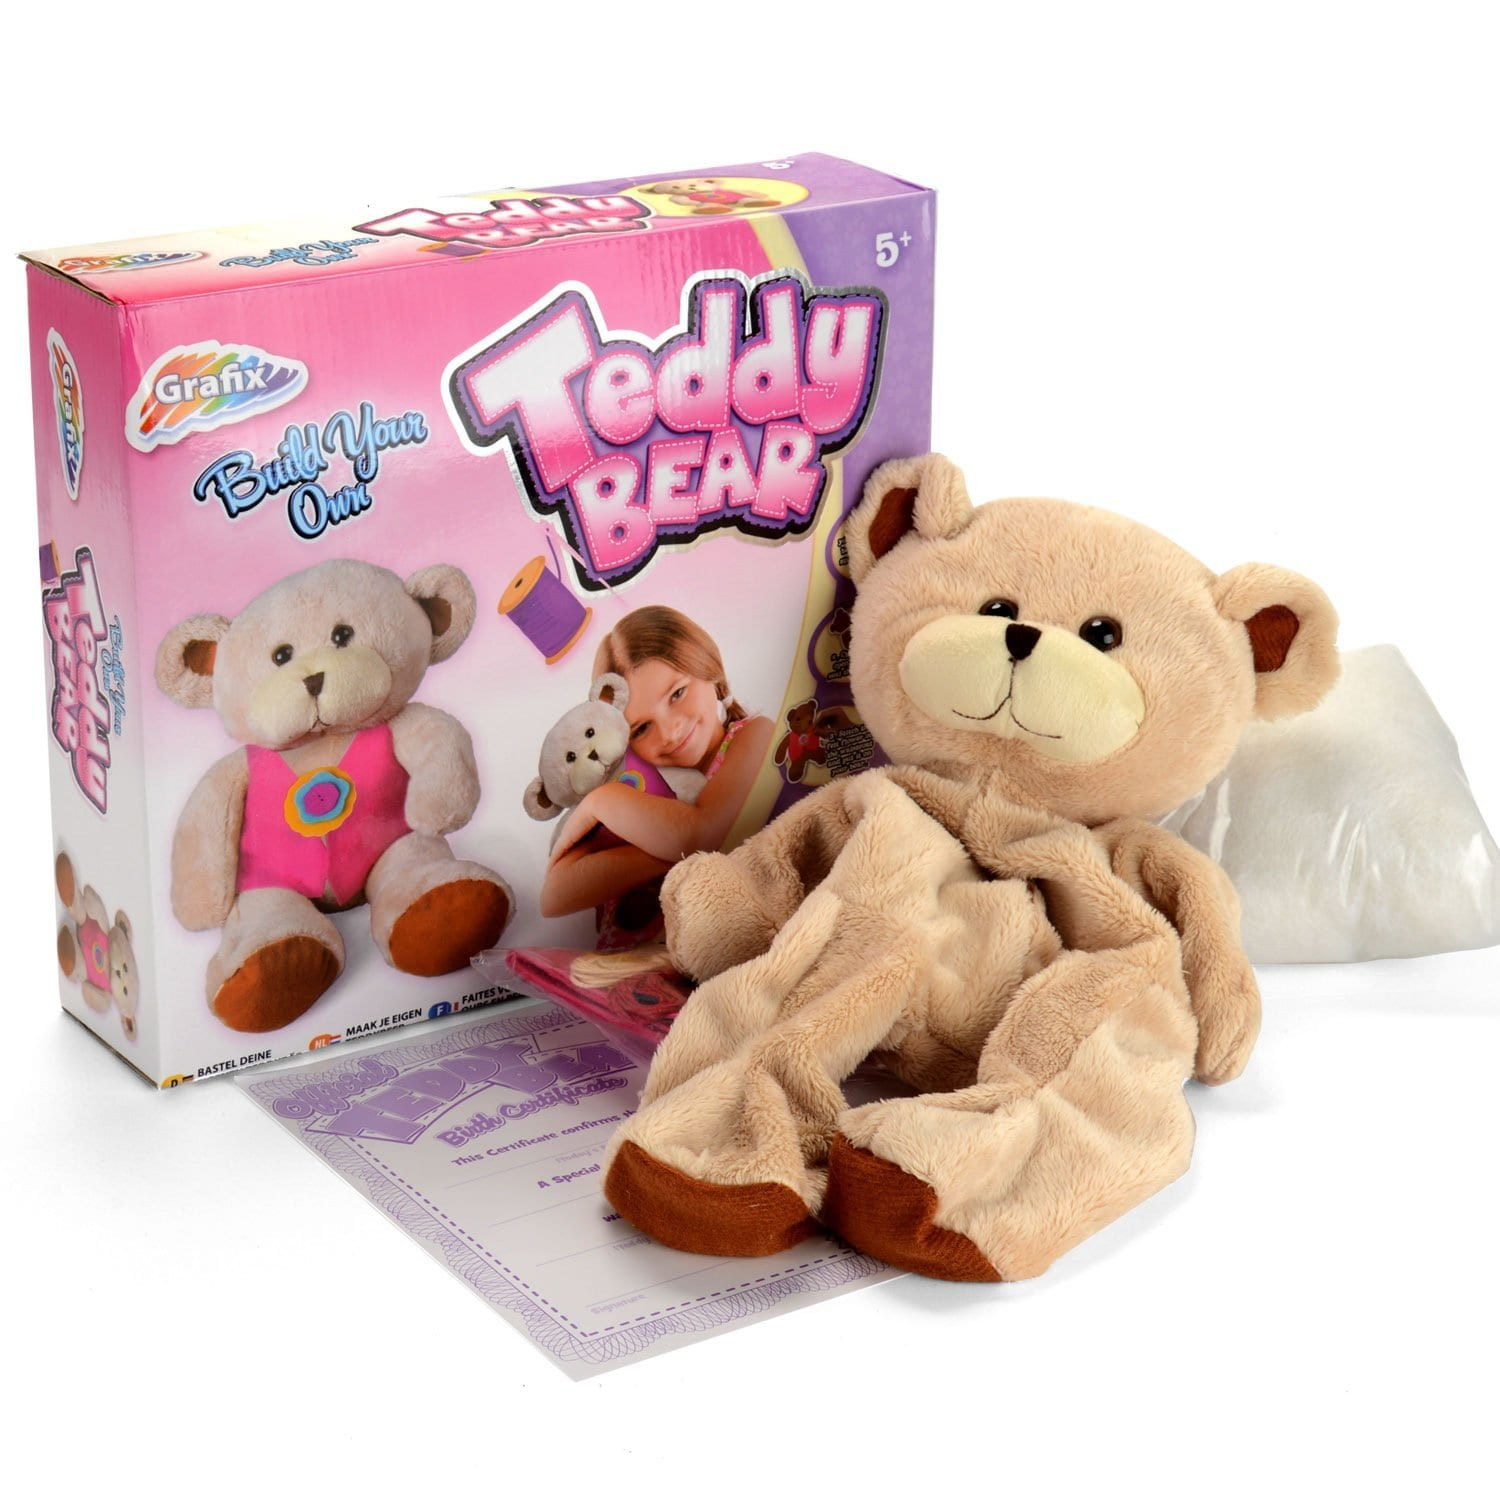 Make Your Own Teddy Create Build A Bear Set  Crocodile Stores